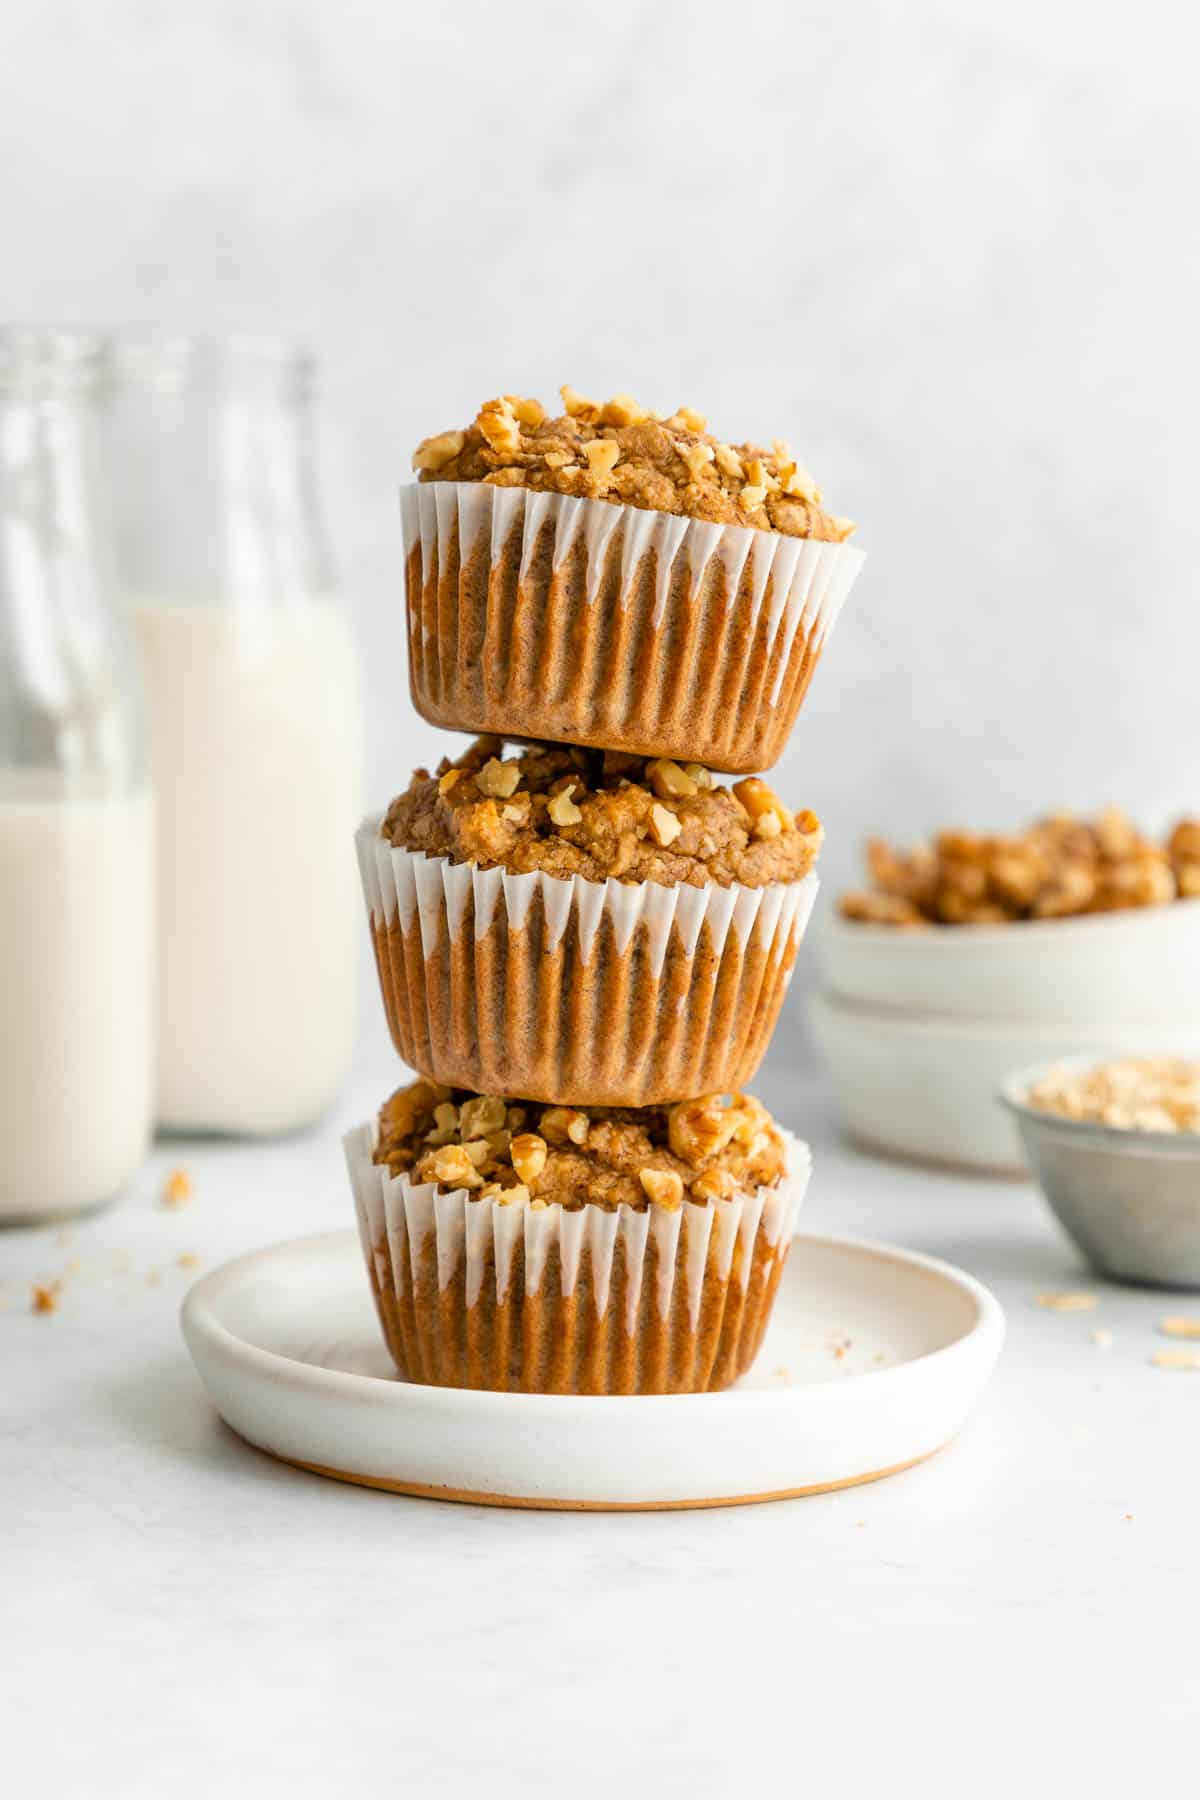 a stack of three vegan banana nut muffins on a white plate